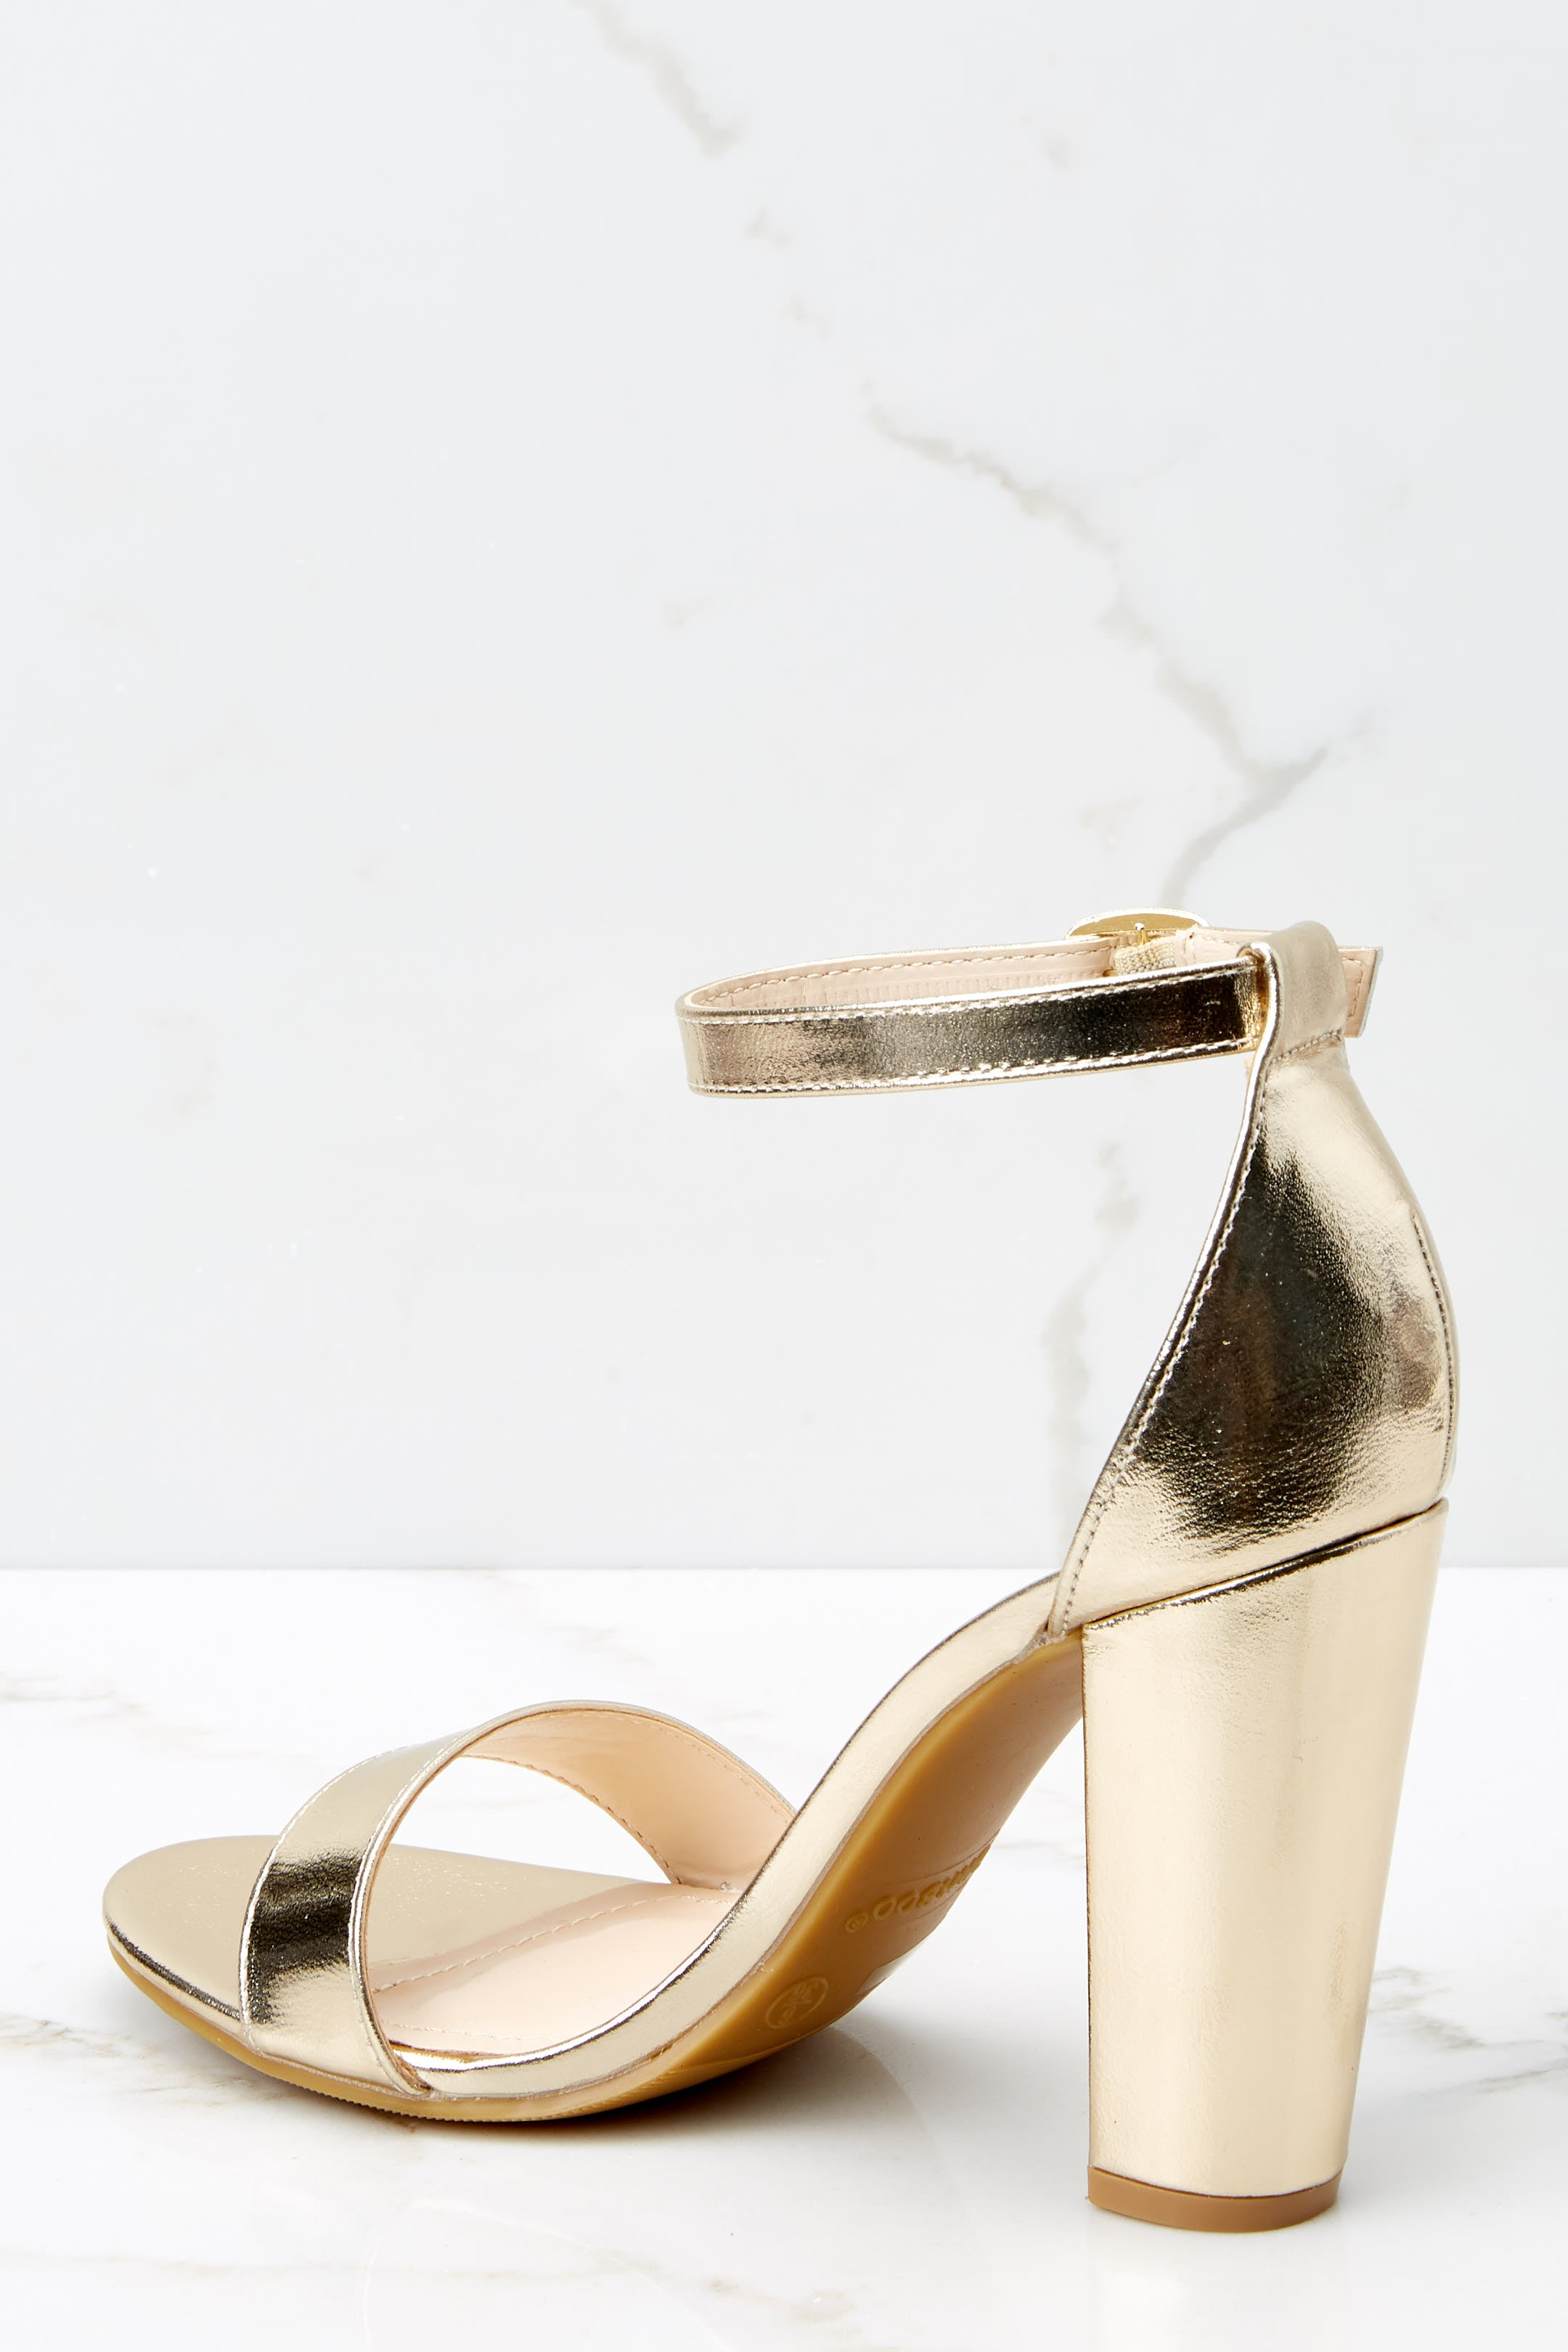 4 Plans To Dance Gold Ankle Strap Heels at reddress.com